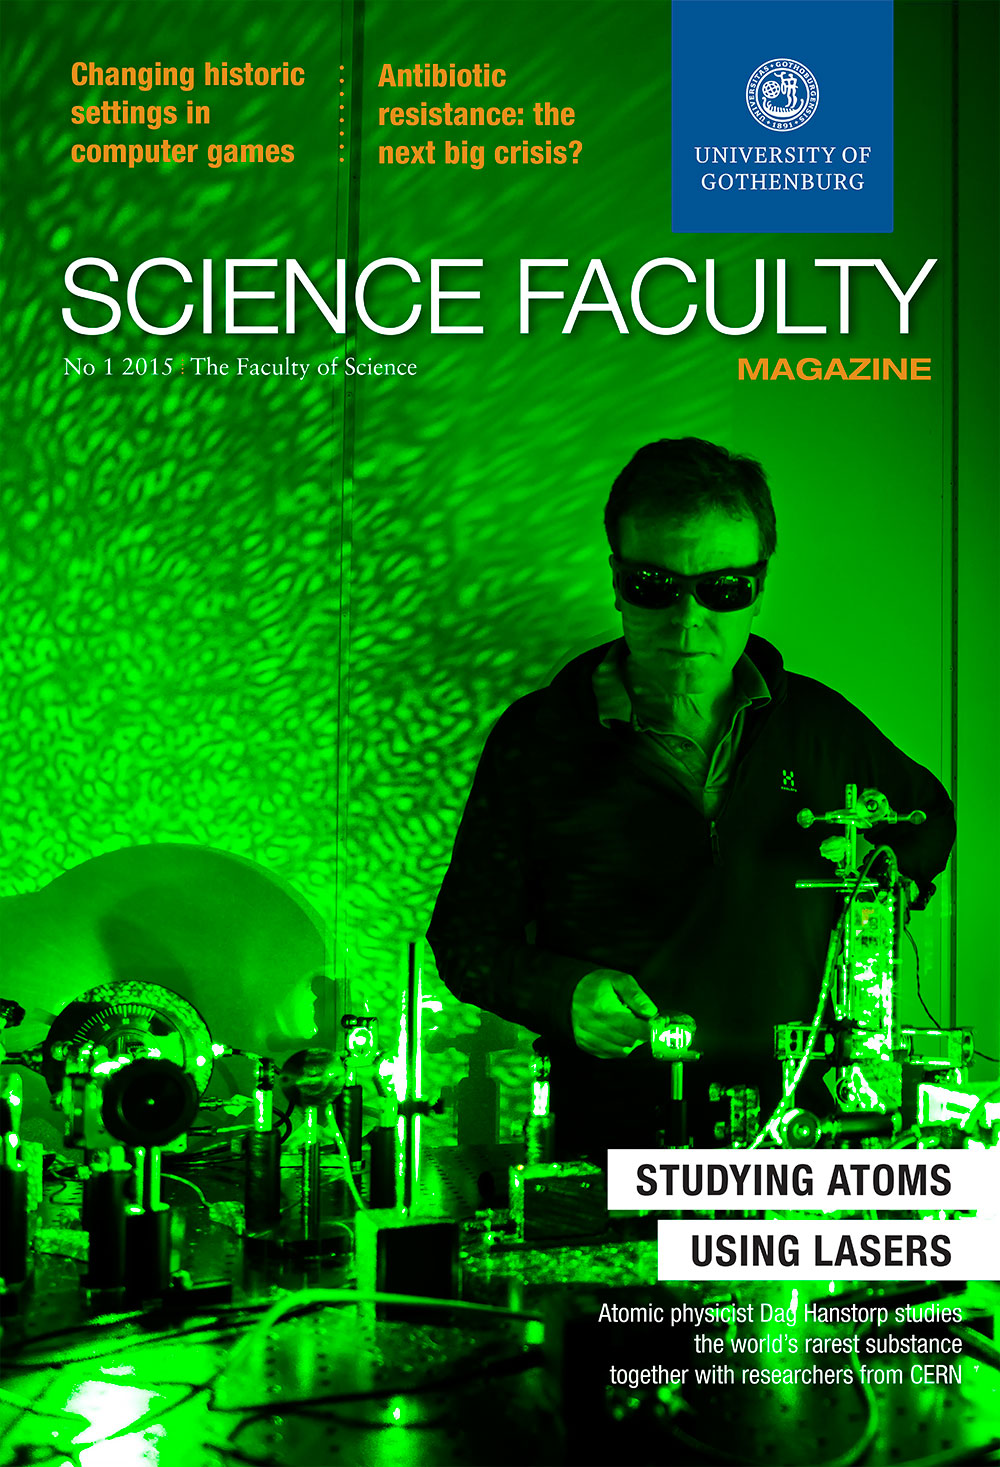 Cover of Science Faculty Magazine Issue 1 2015